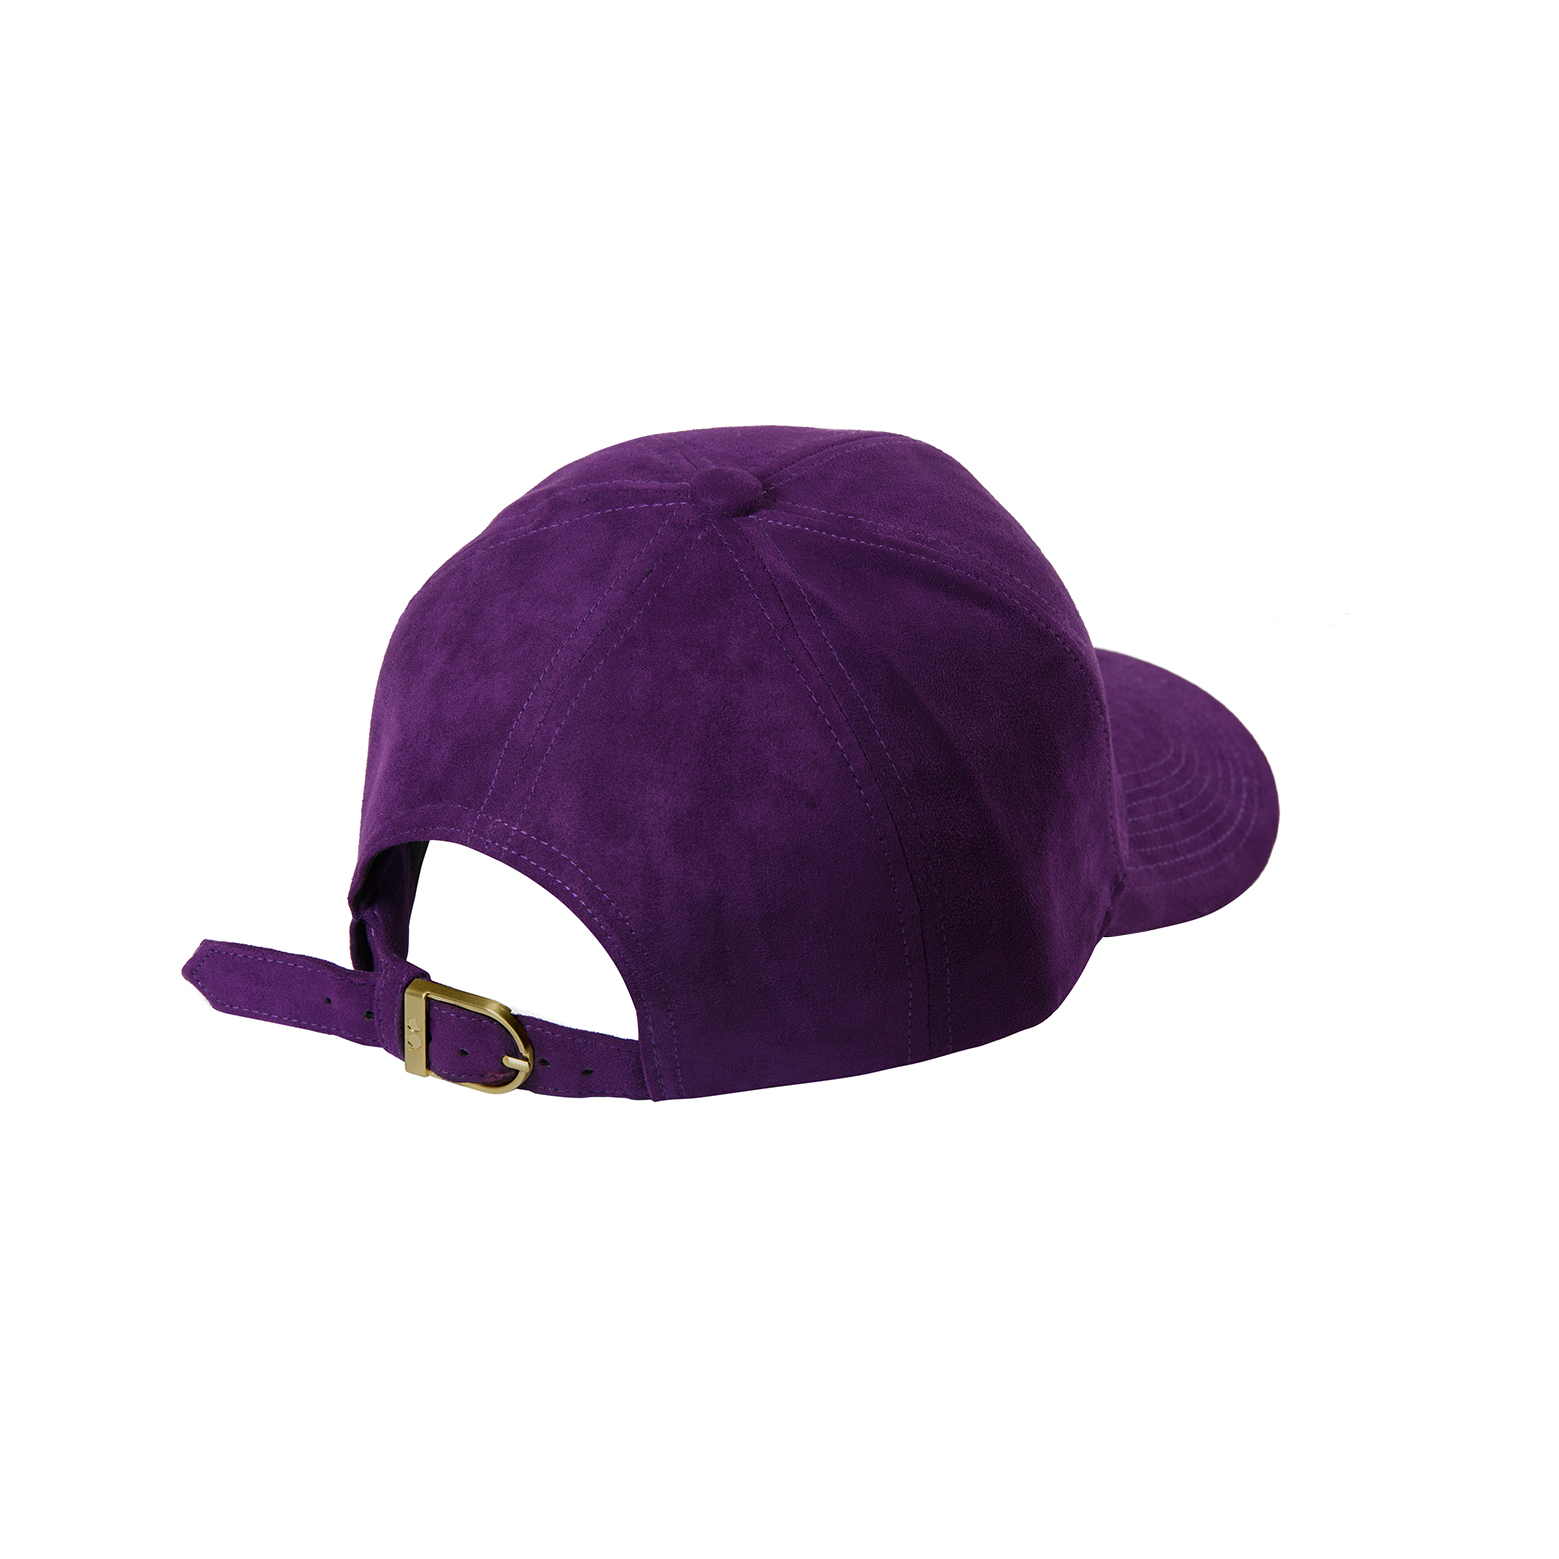 BASEBALL CAP VIOLET SUEDE BACK SIDE